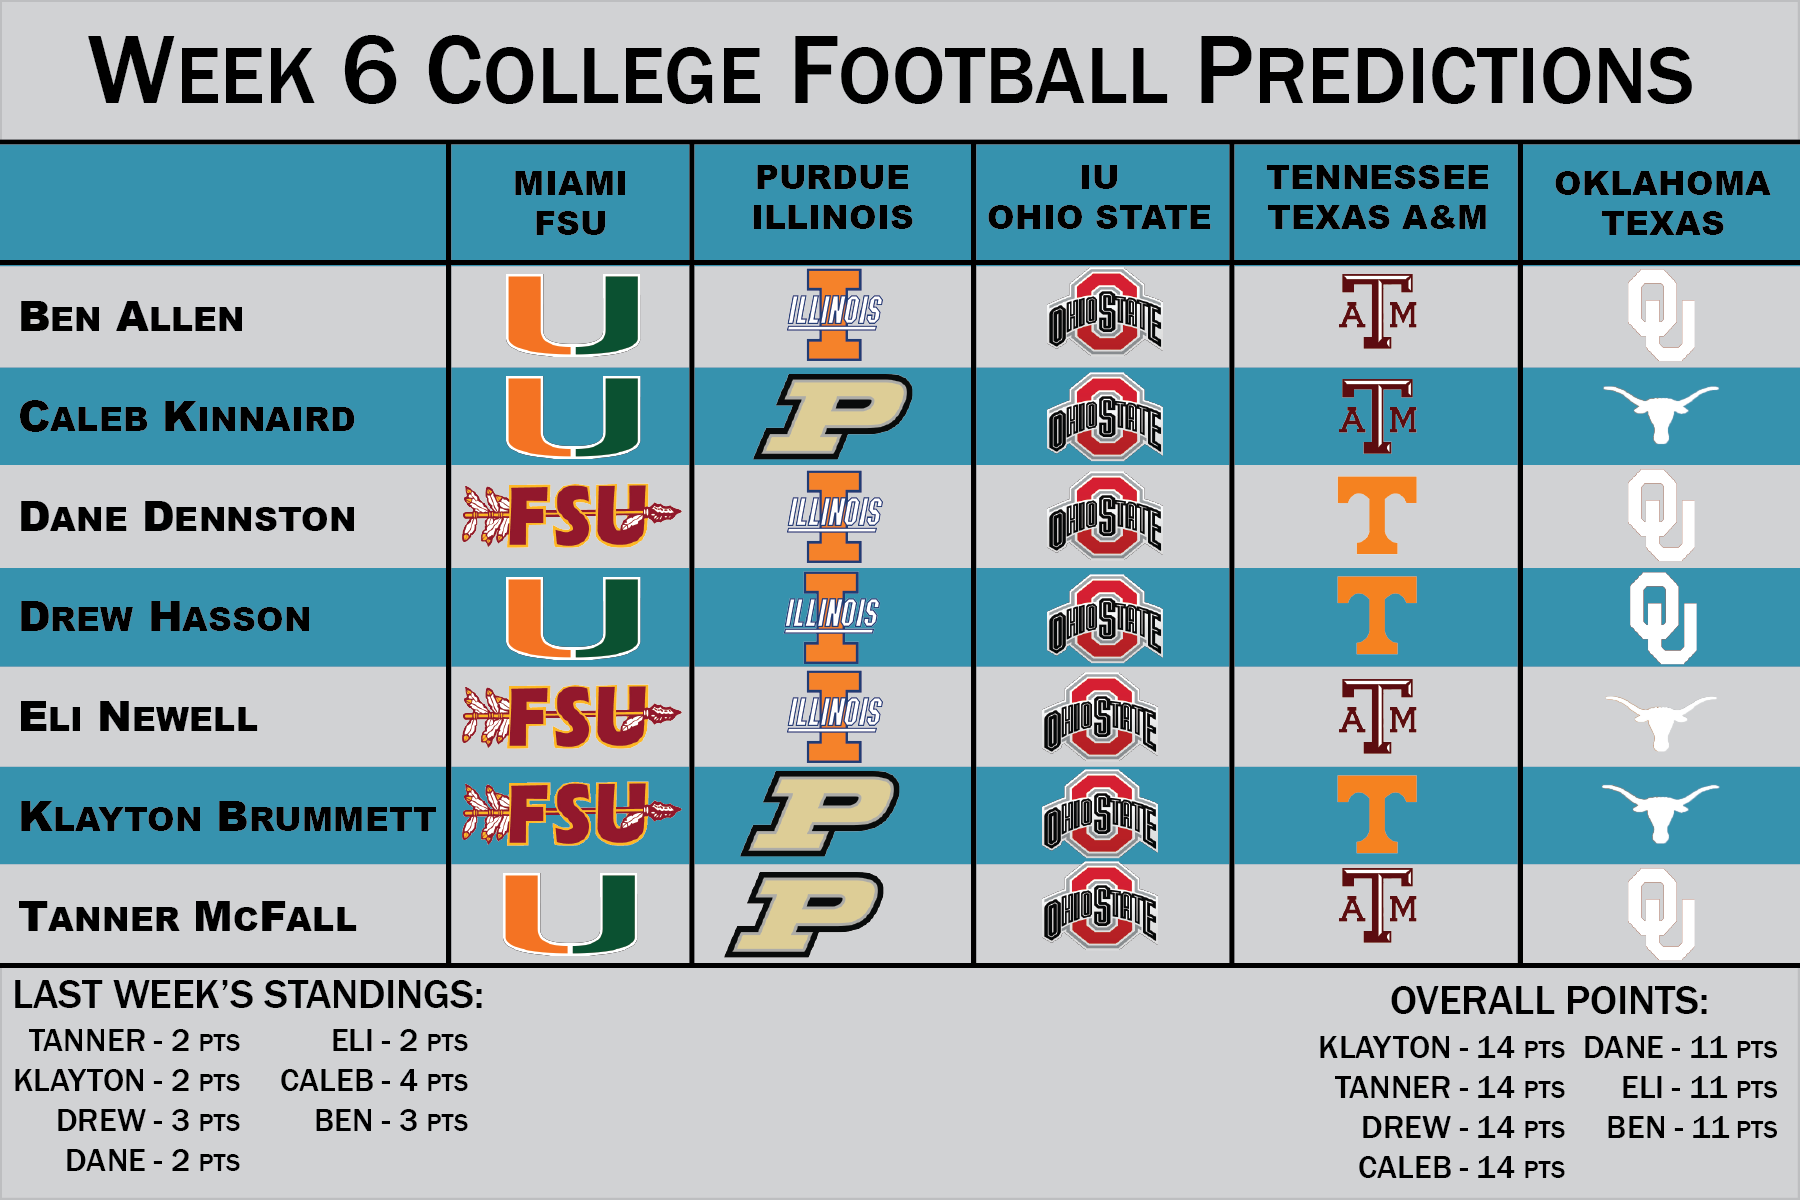 College Football Las Vegas Sports Betting Odds And Point Spreads At